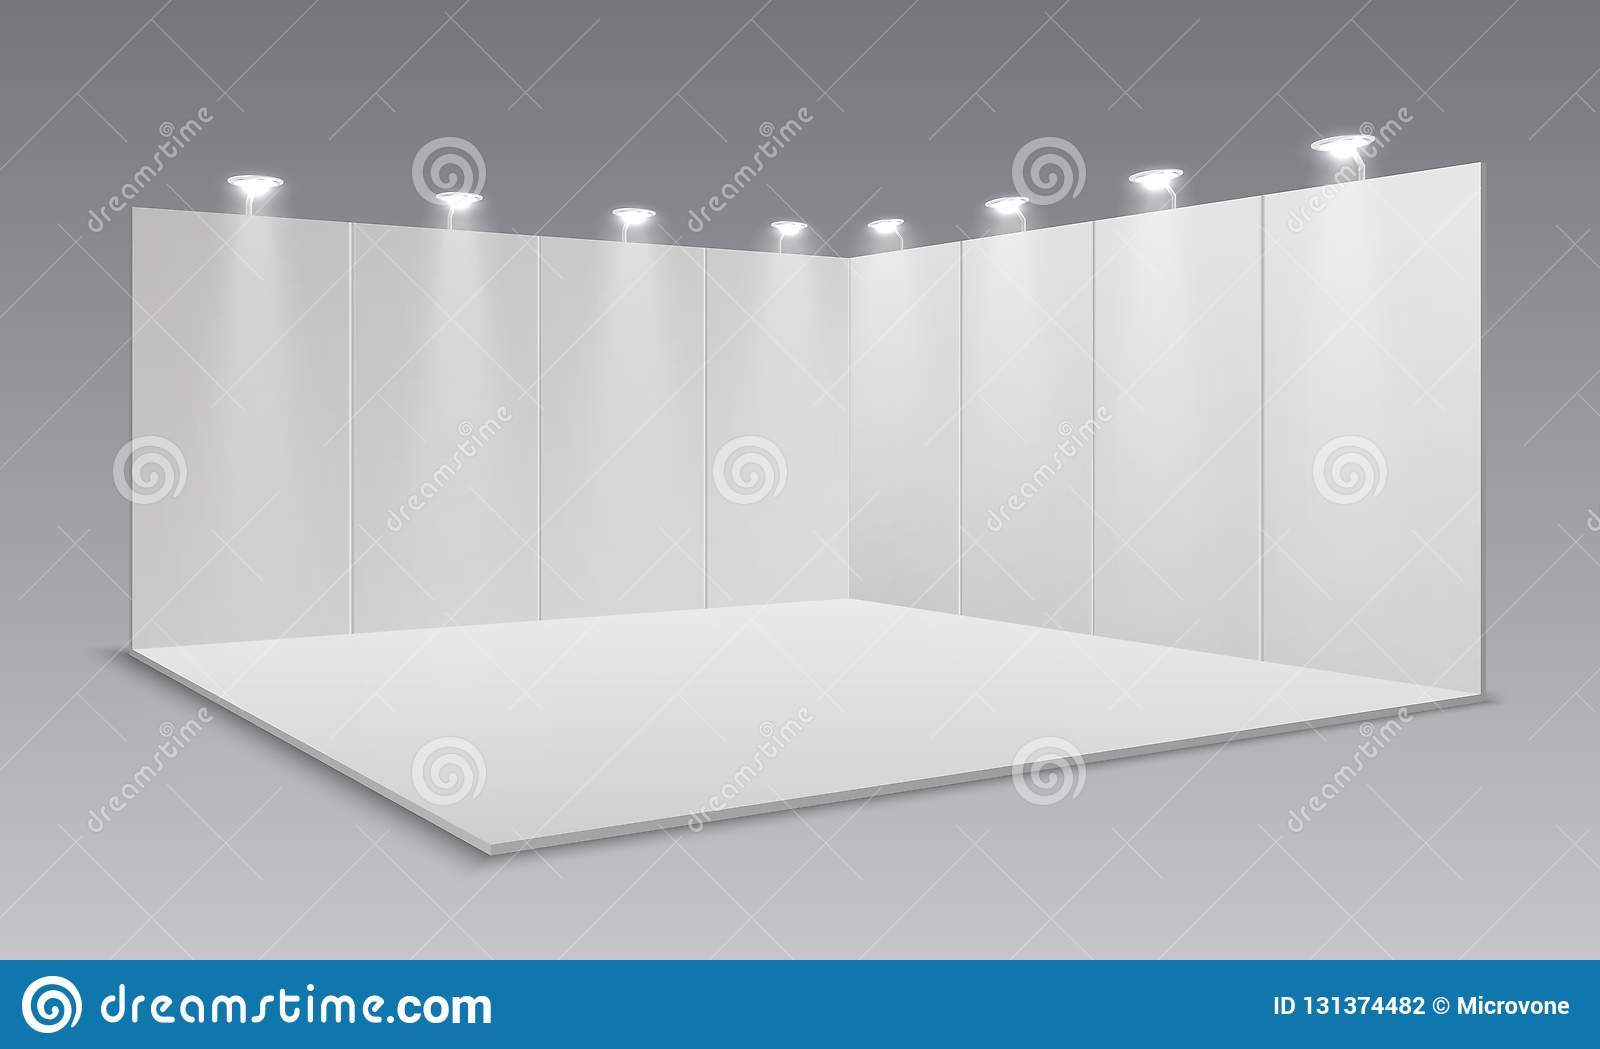 Exhibition Stand Framework : Blank display exhibition stand white empty panels promotional